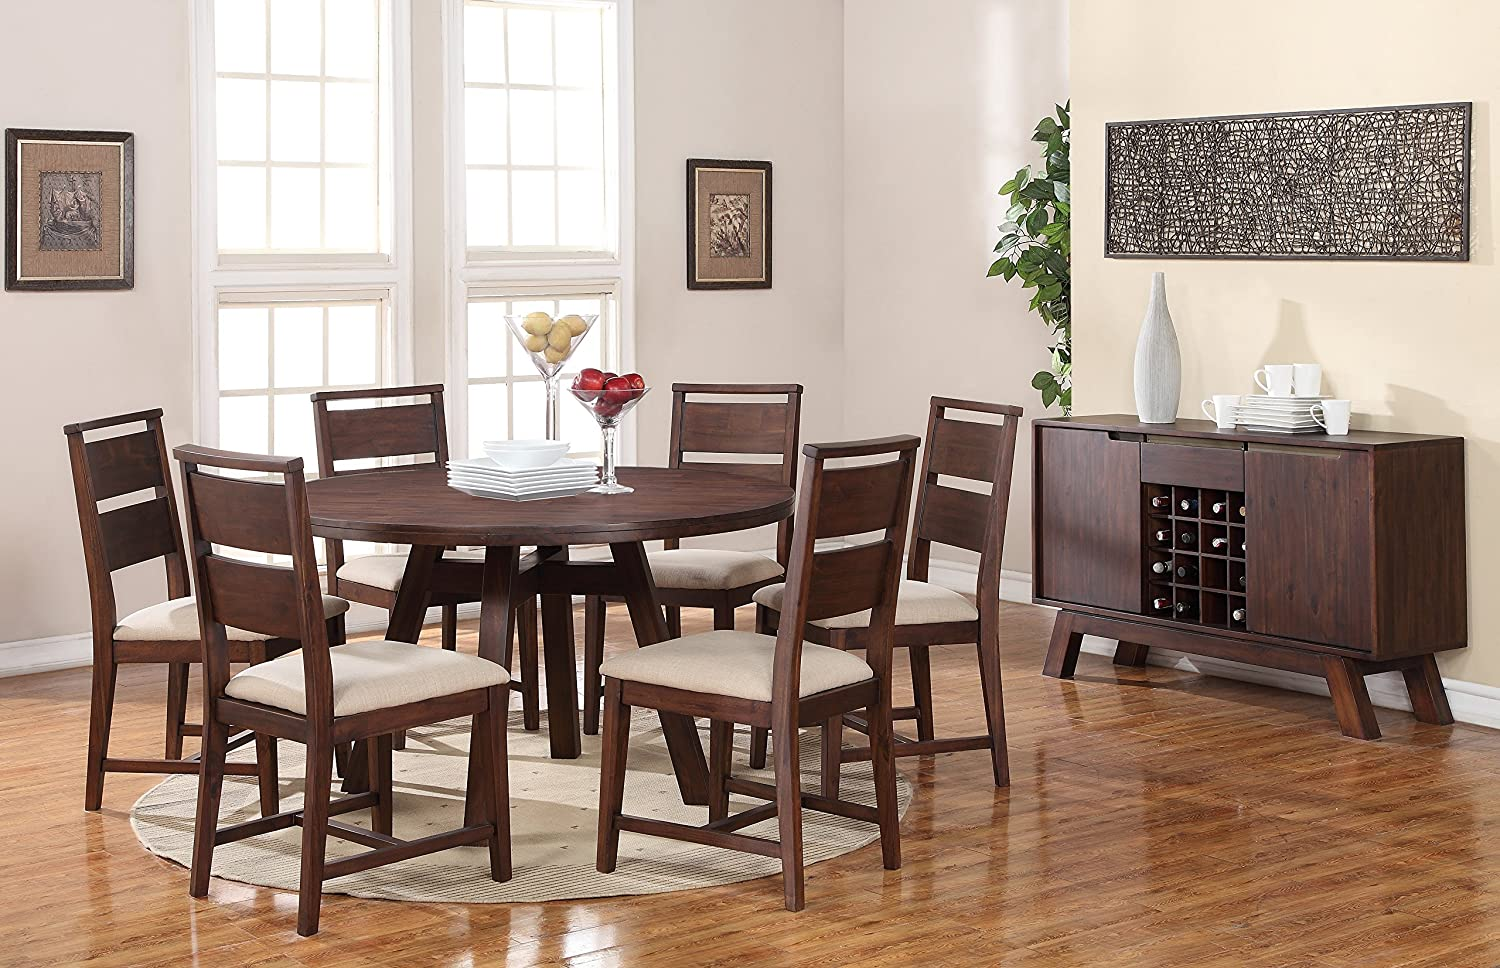 Exceptionnel Amazon.com: Modus Furniture 7Z4861 Portland Solid Wood Round Dining Table,  Walnut: Kitchen U0026 Dining